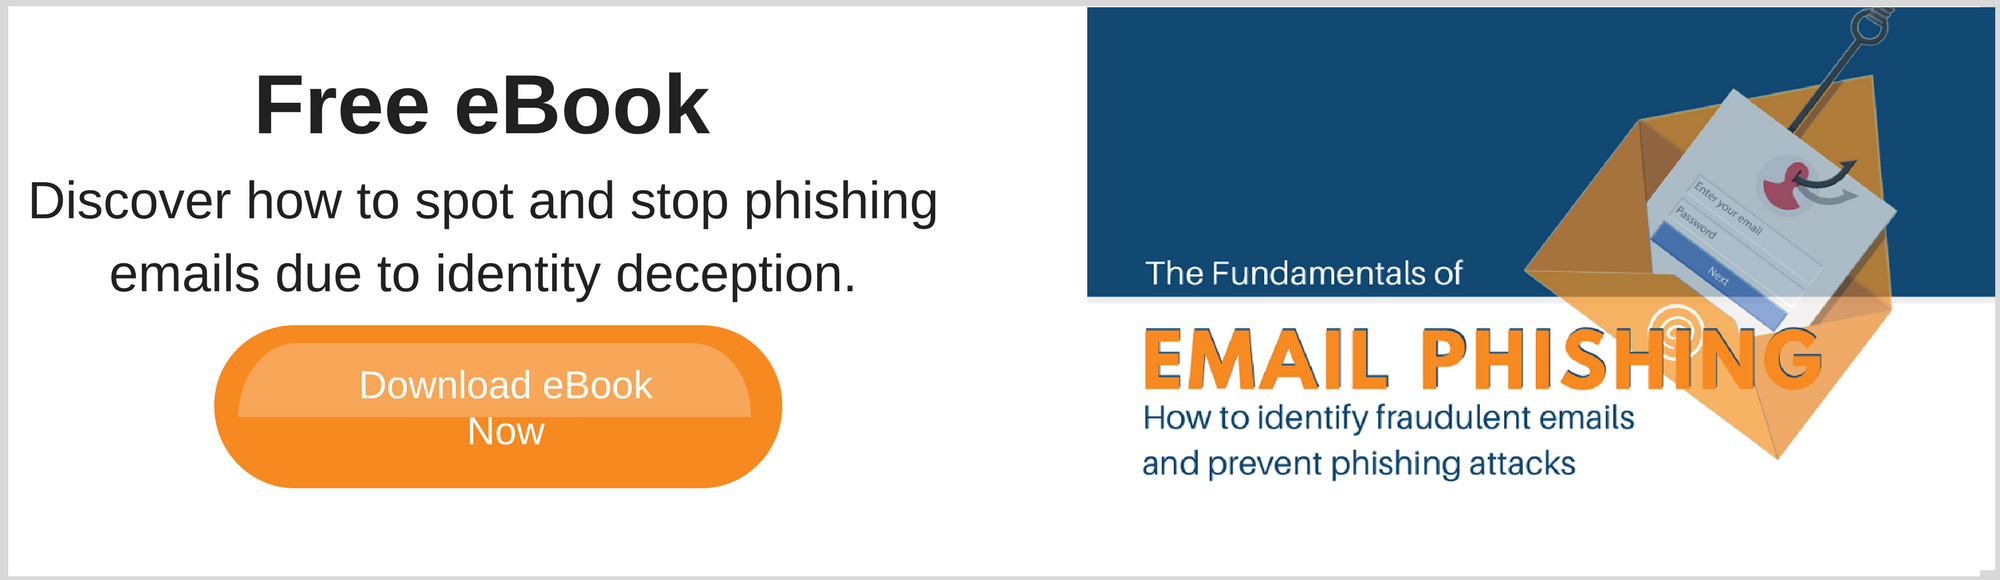 How to spot and stop email phishing ebook